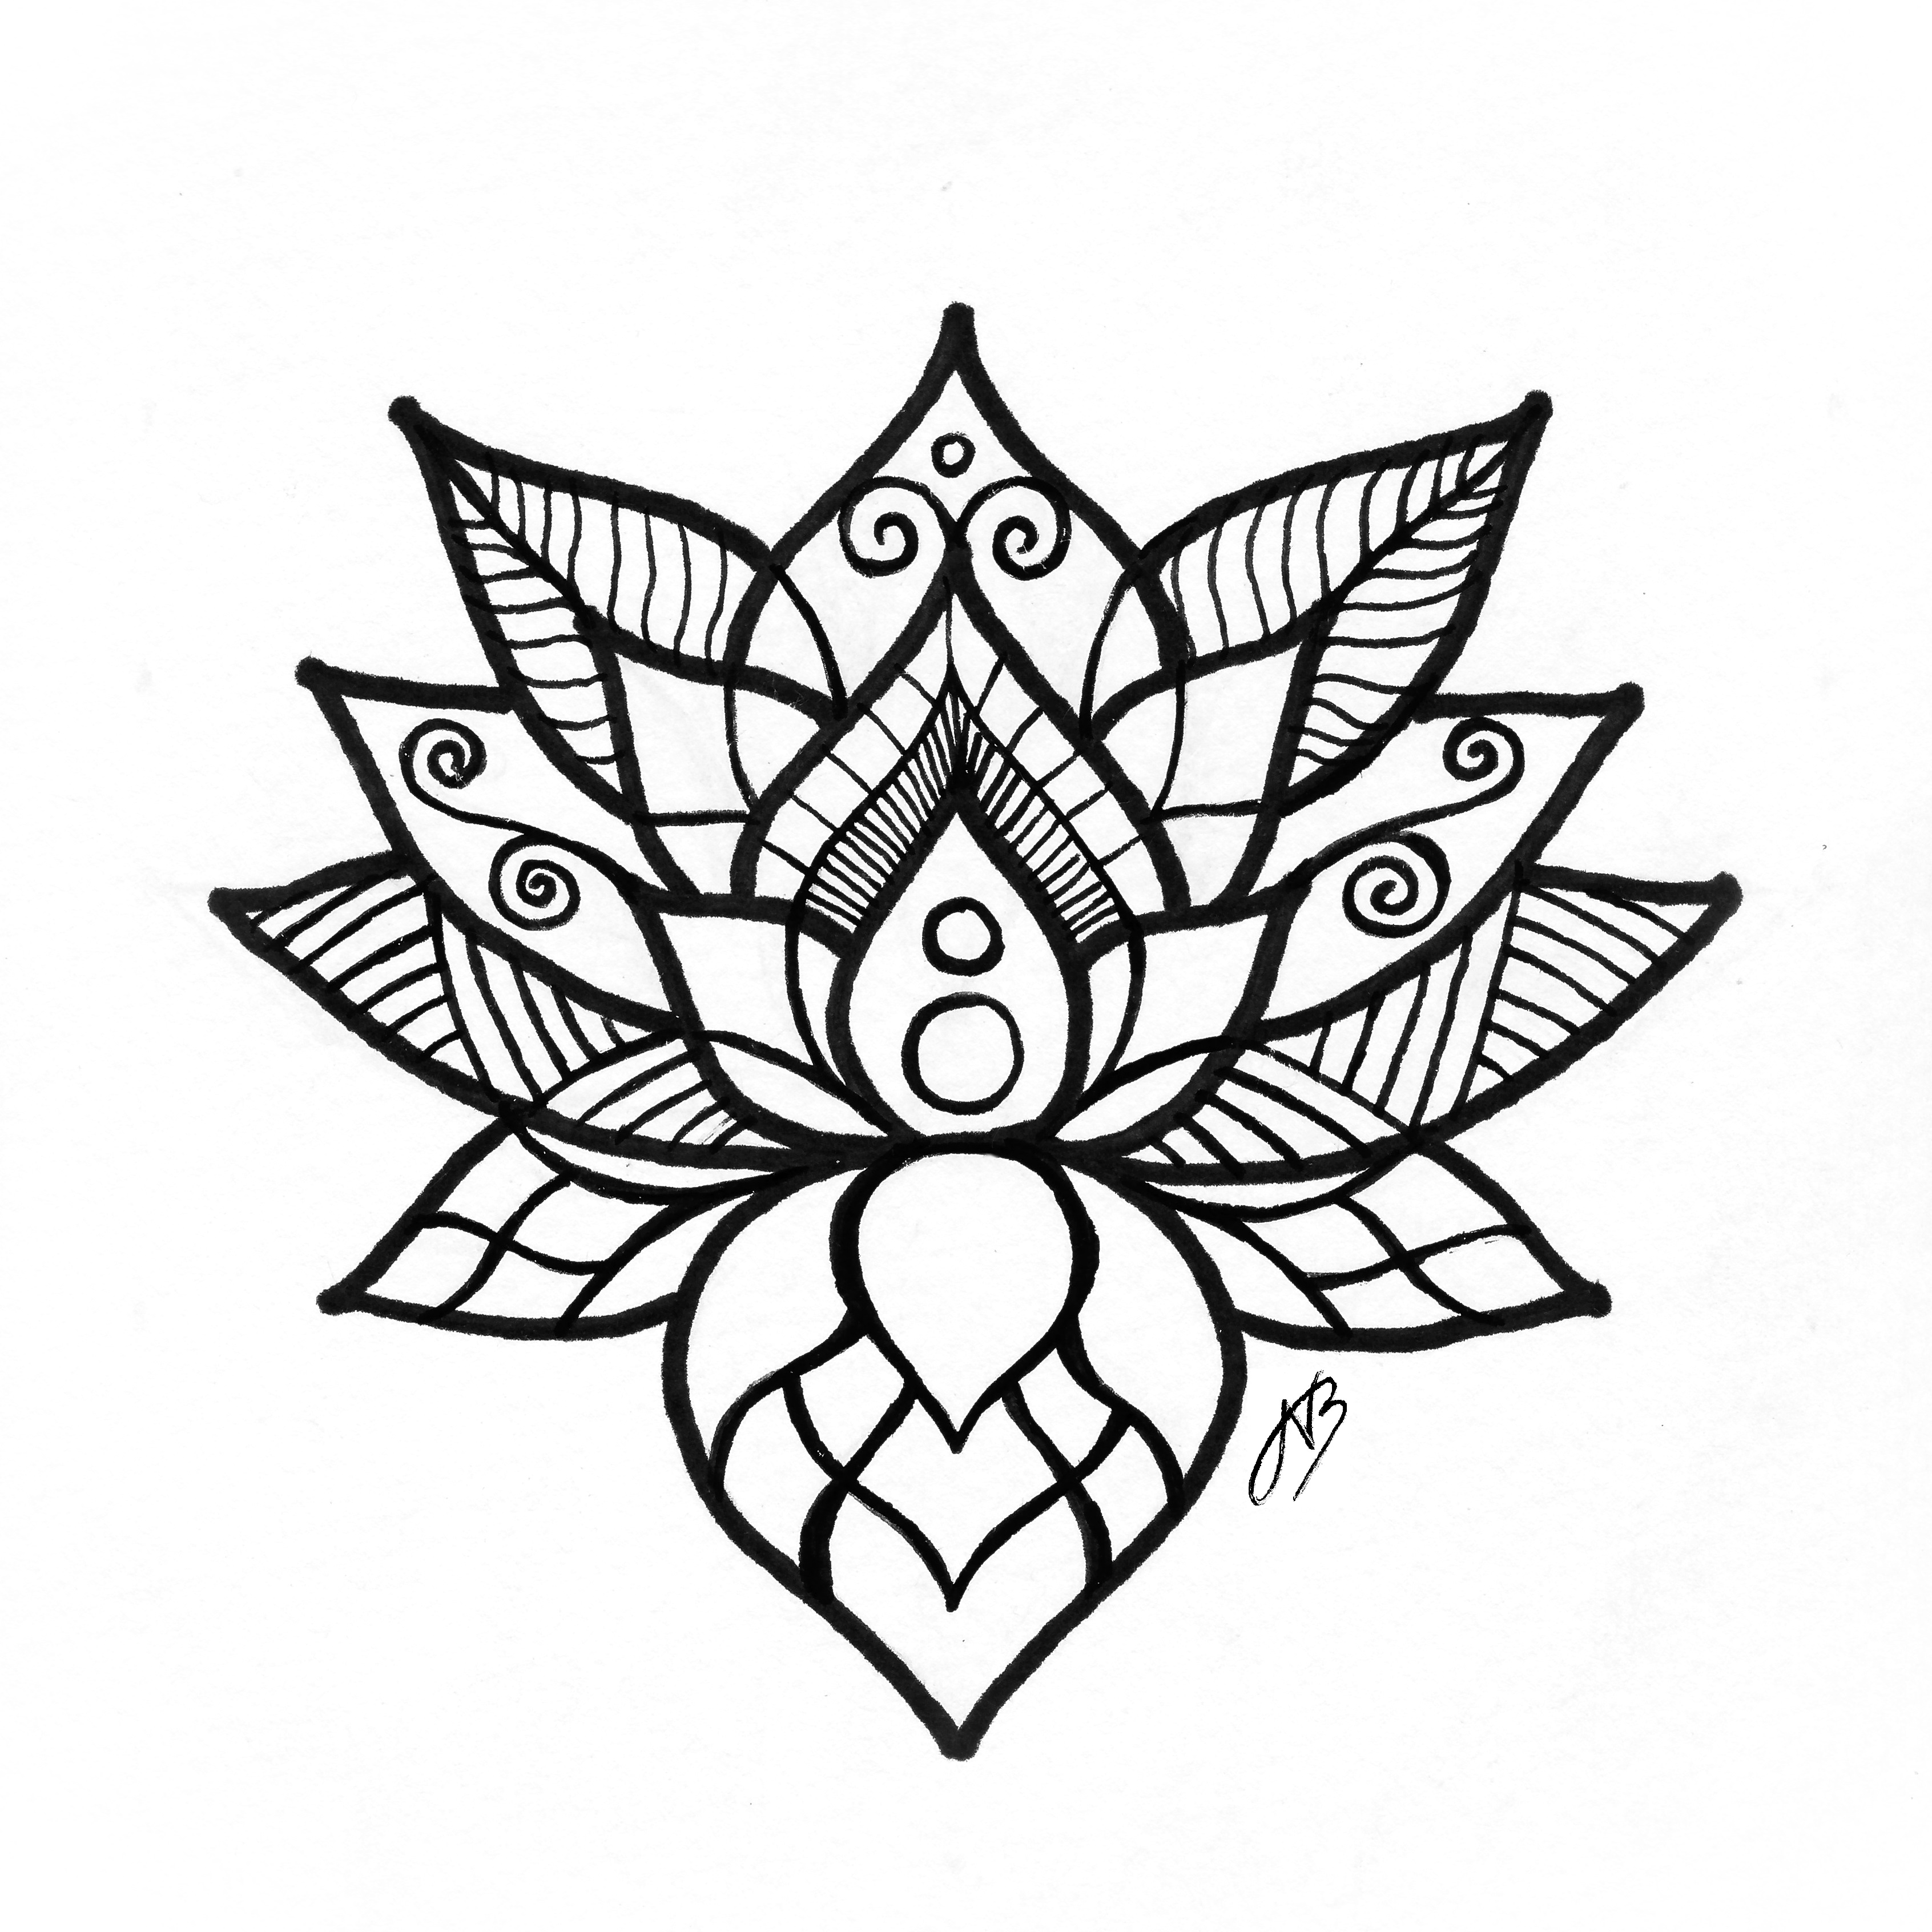 Line Drawing Mandala : Mandala drawing at getdrawings free for personal use